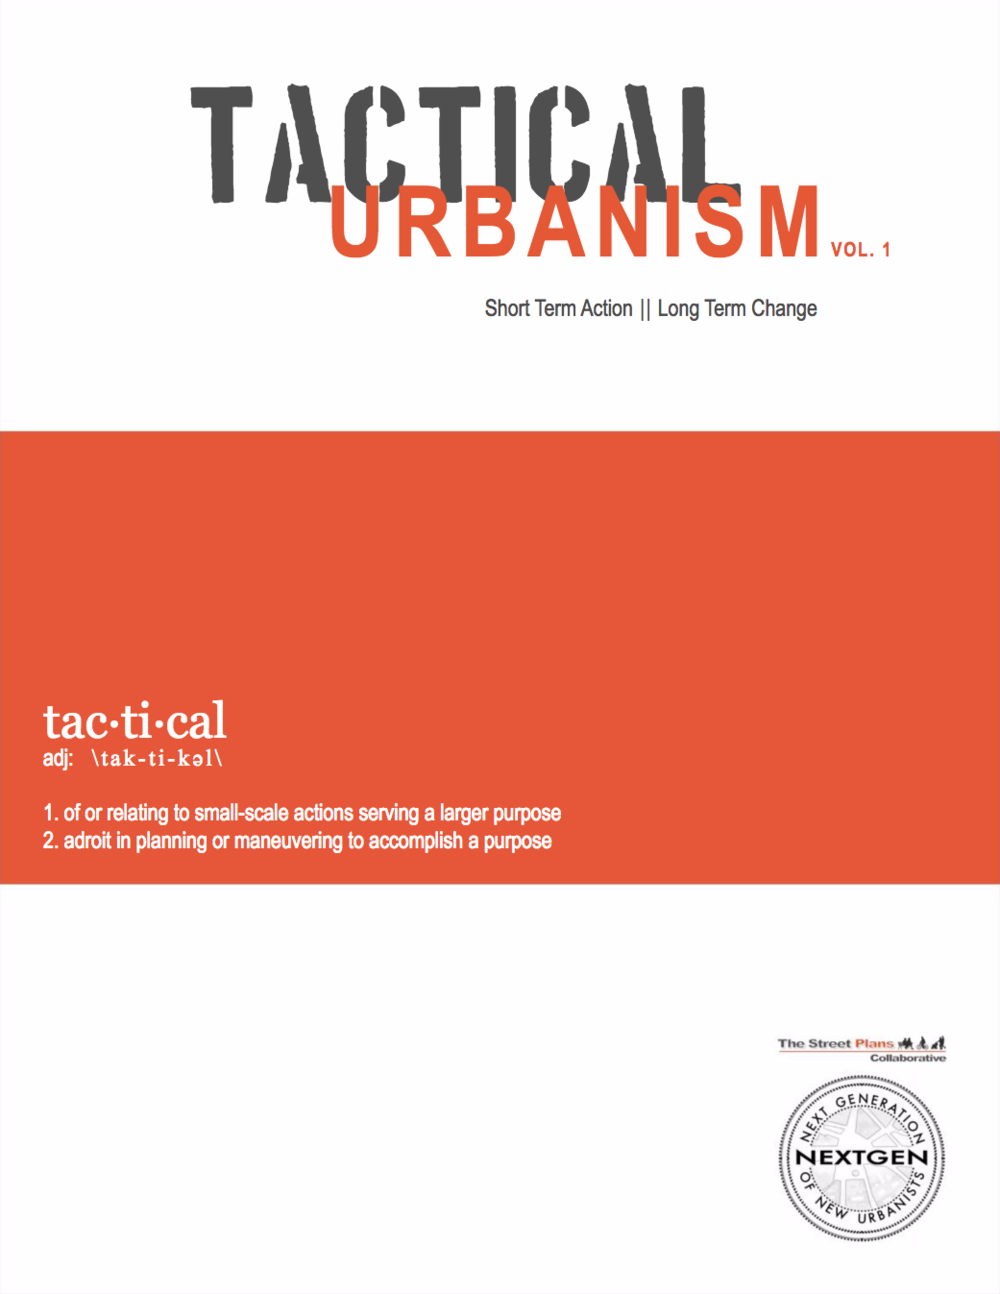 Tactical Urbanism Vol. 1